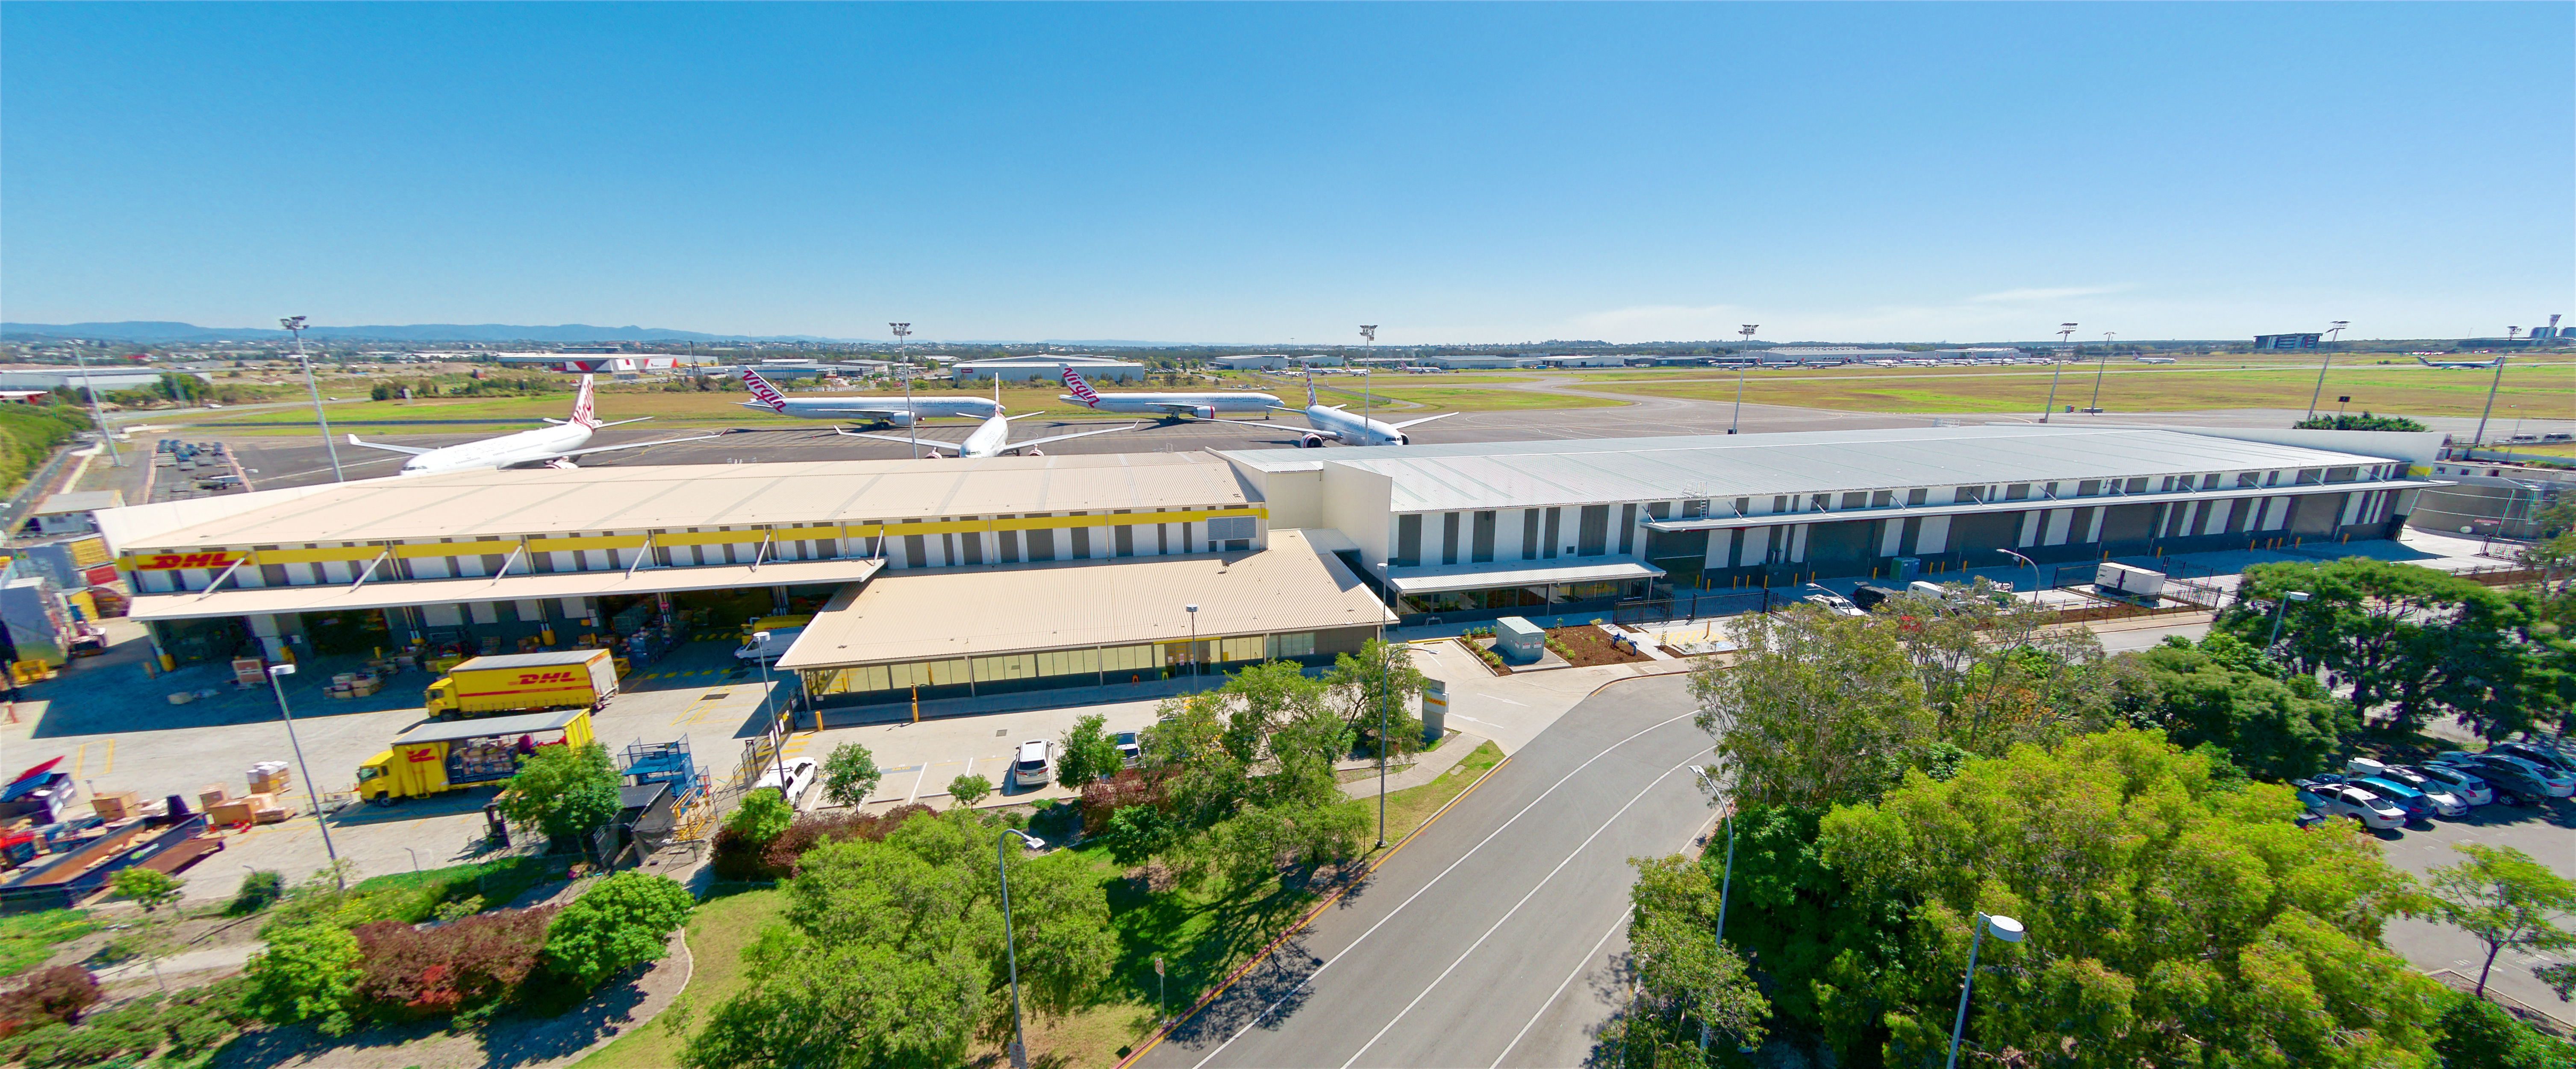 11 DHL EXTENSION AND EXISTING WAREHOUSE, BORONIA ROAD 001